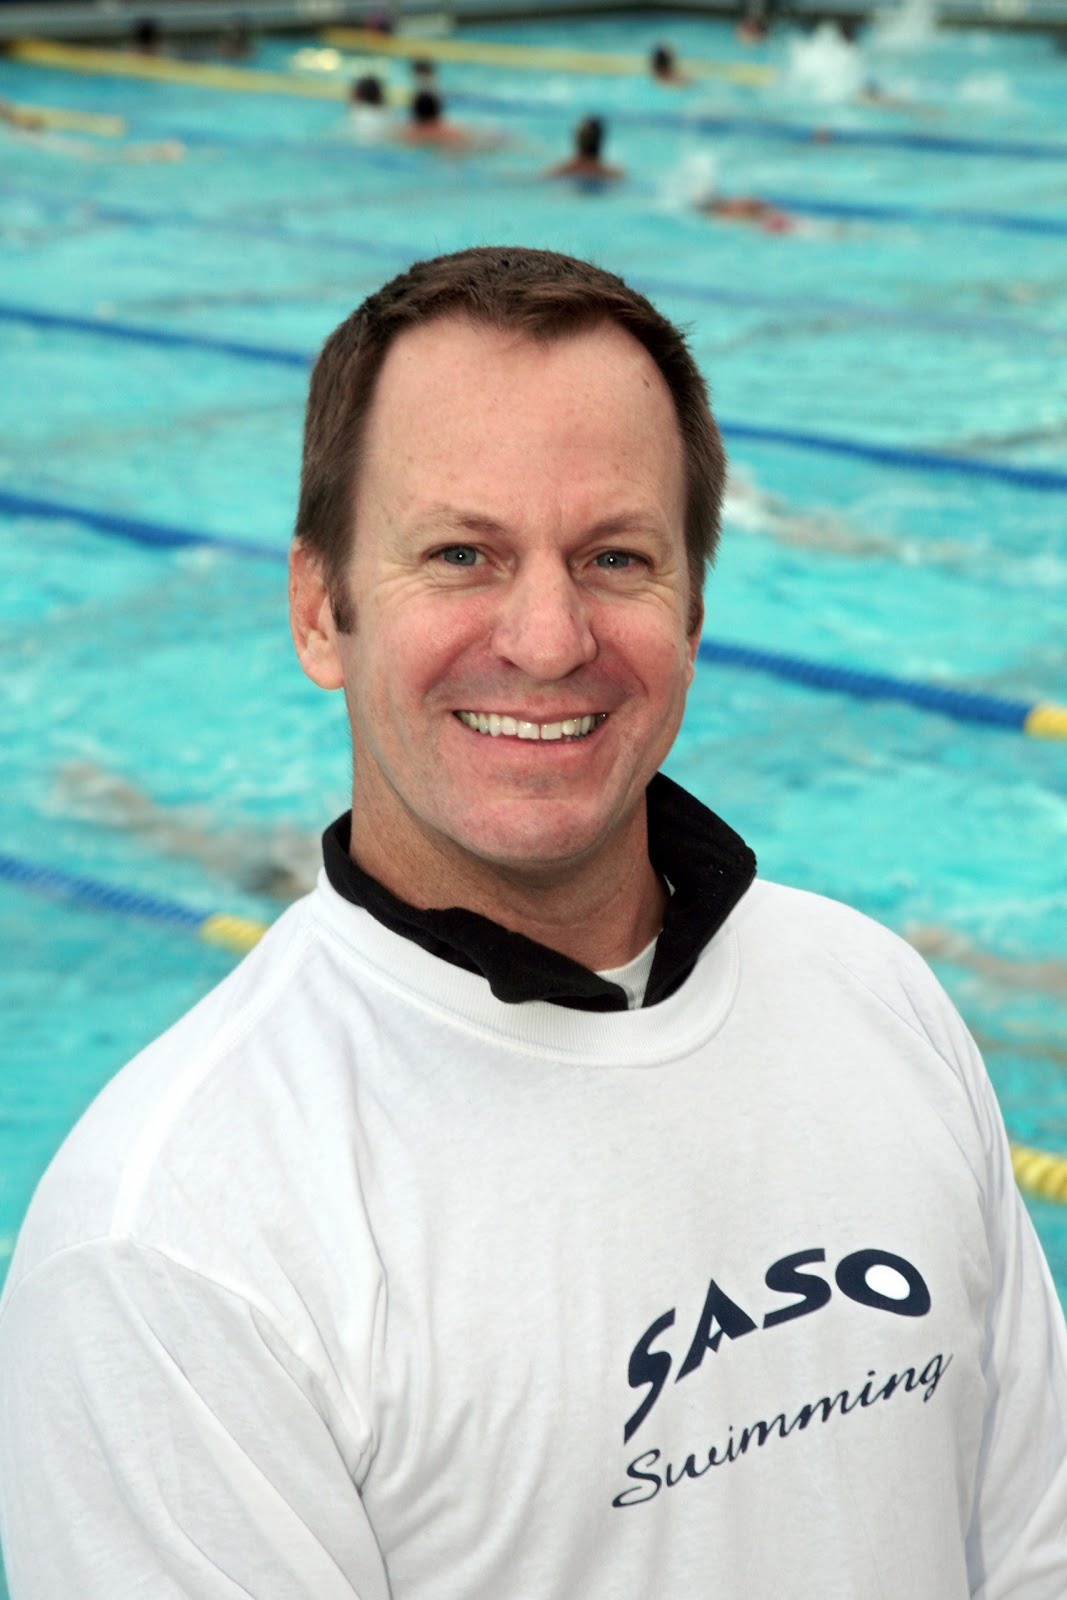 Saso swimming 10 1 10 11 1 10 for Humboldt swimming pool schedule